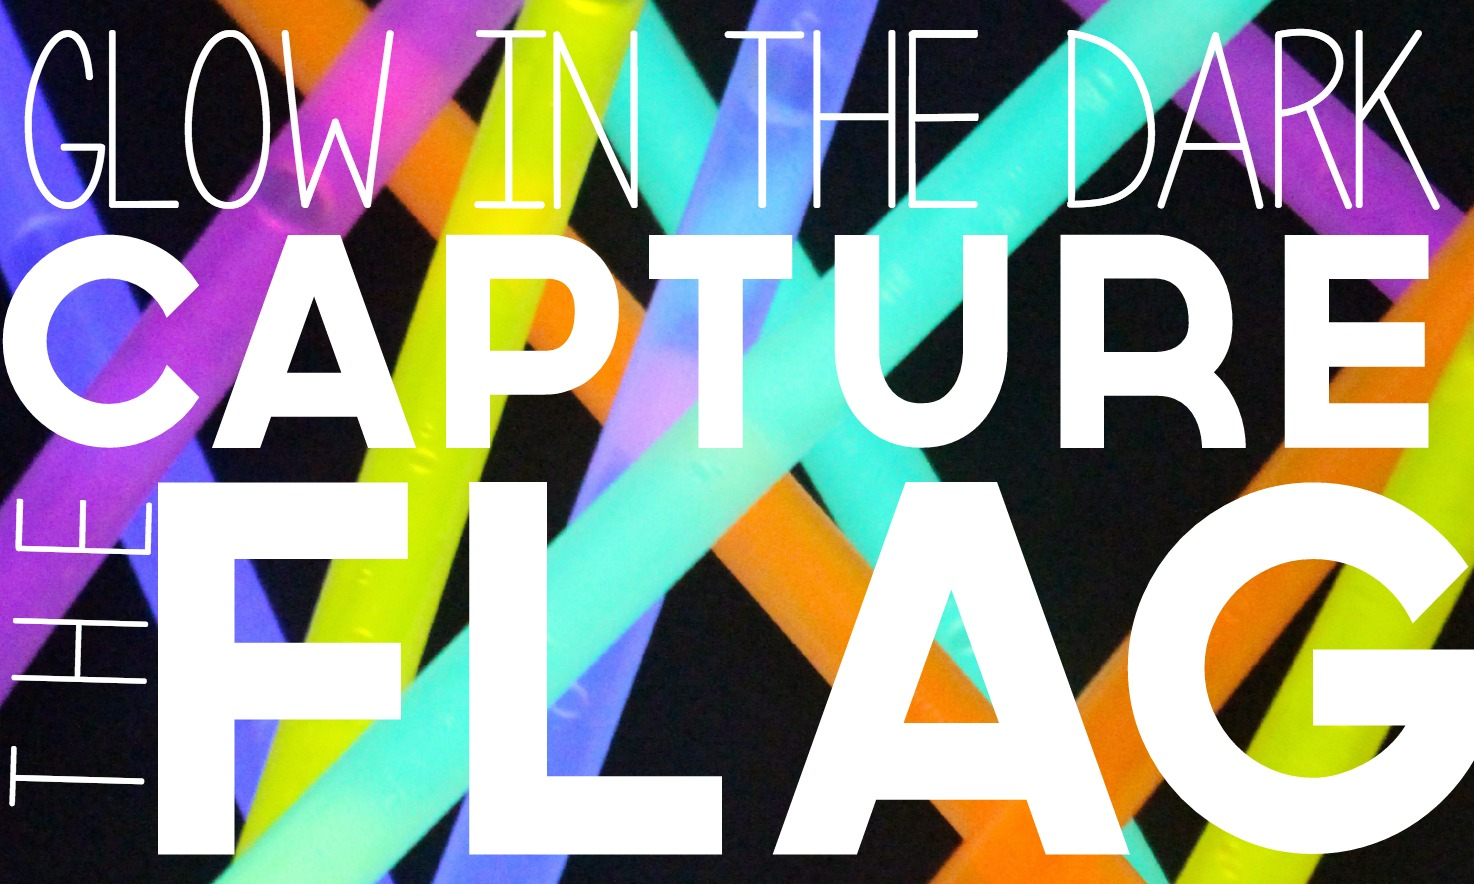 Glow in the dark capture the flag for Capture the flag